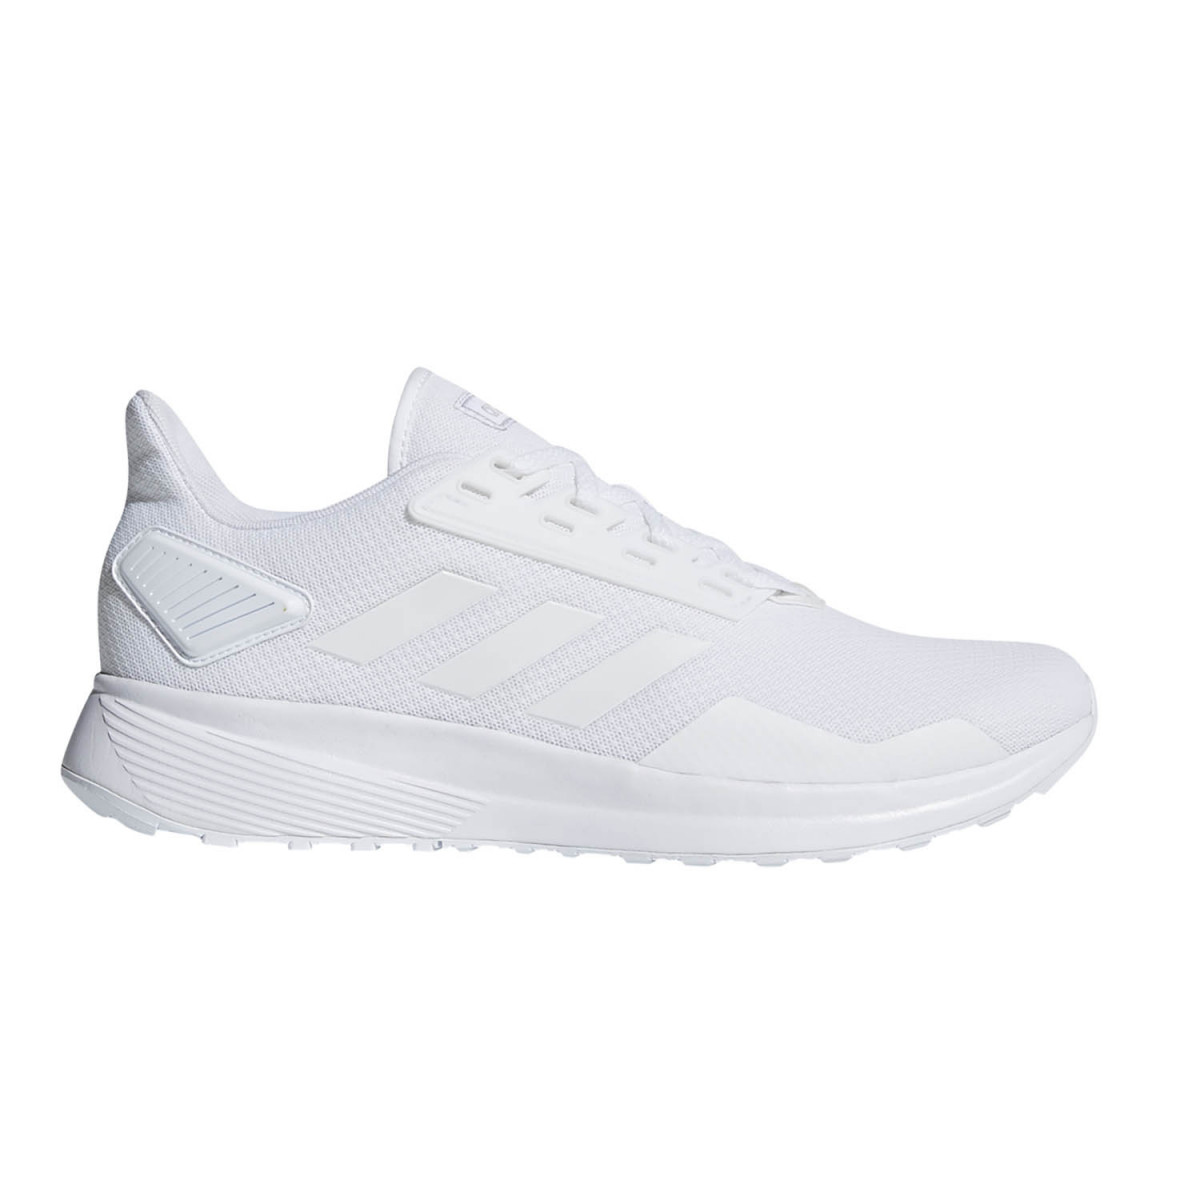 big sale fefac 98e7c Zapatillas Adidas Duramo 9